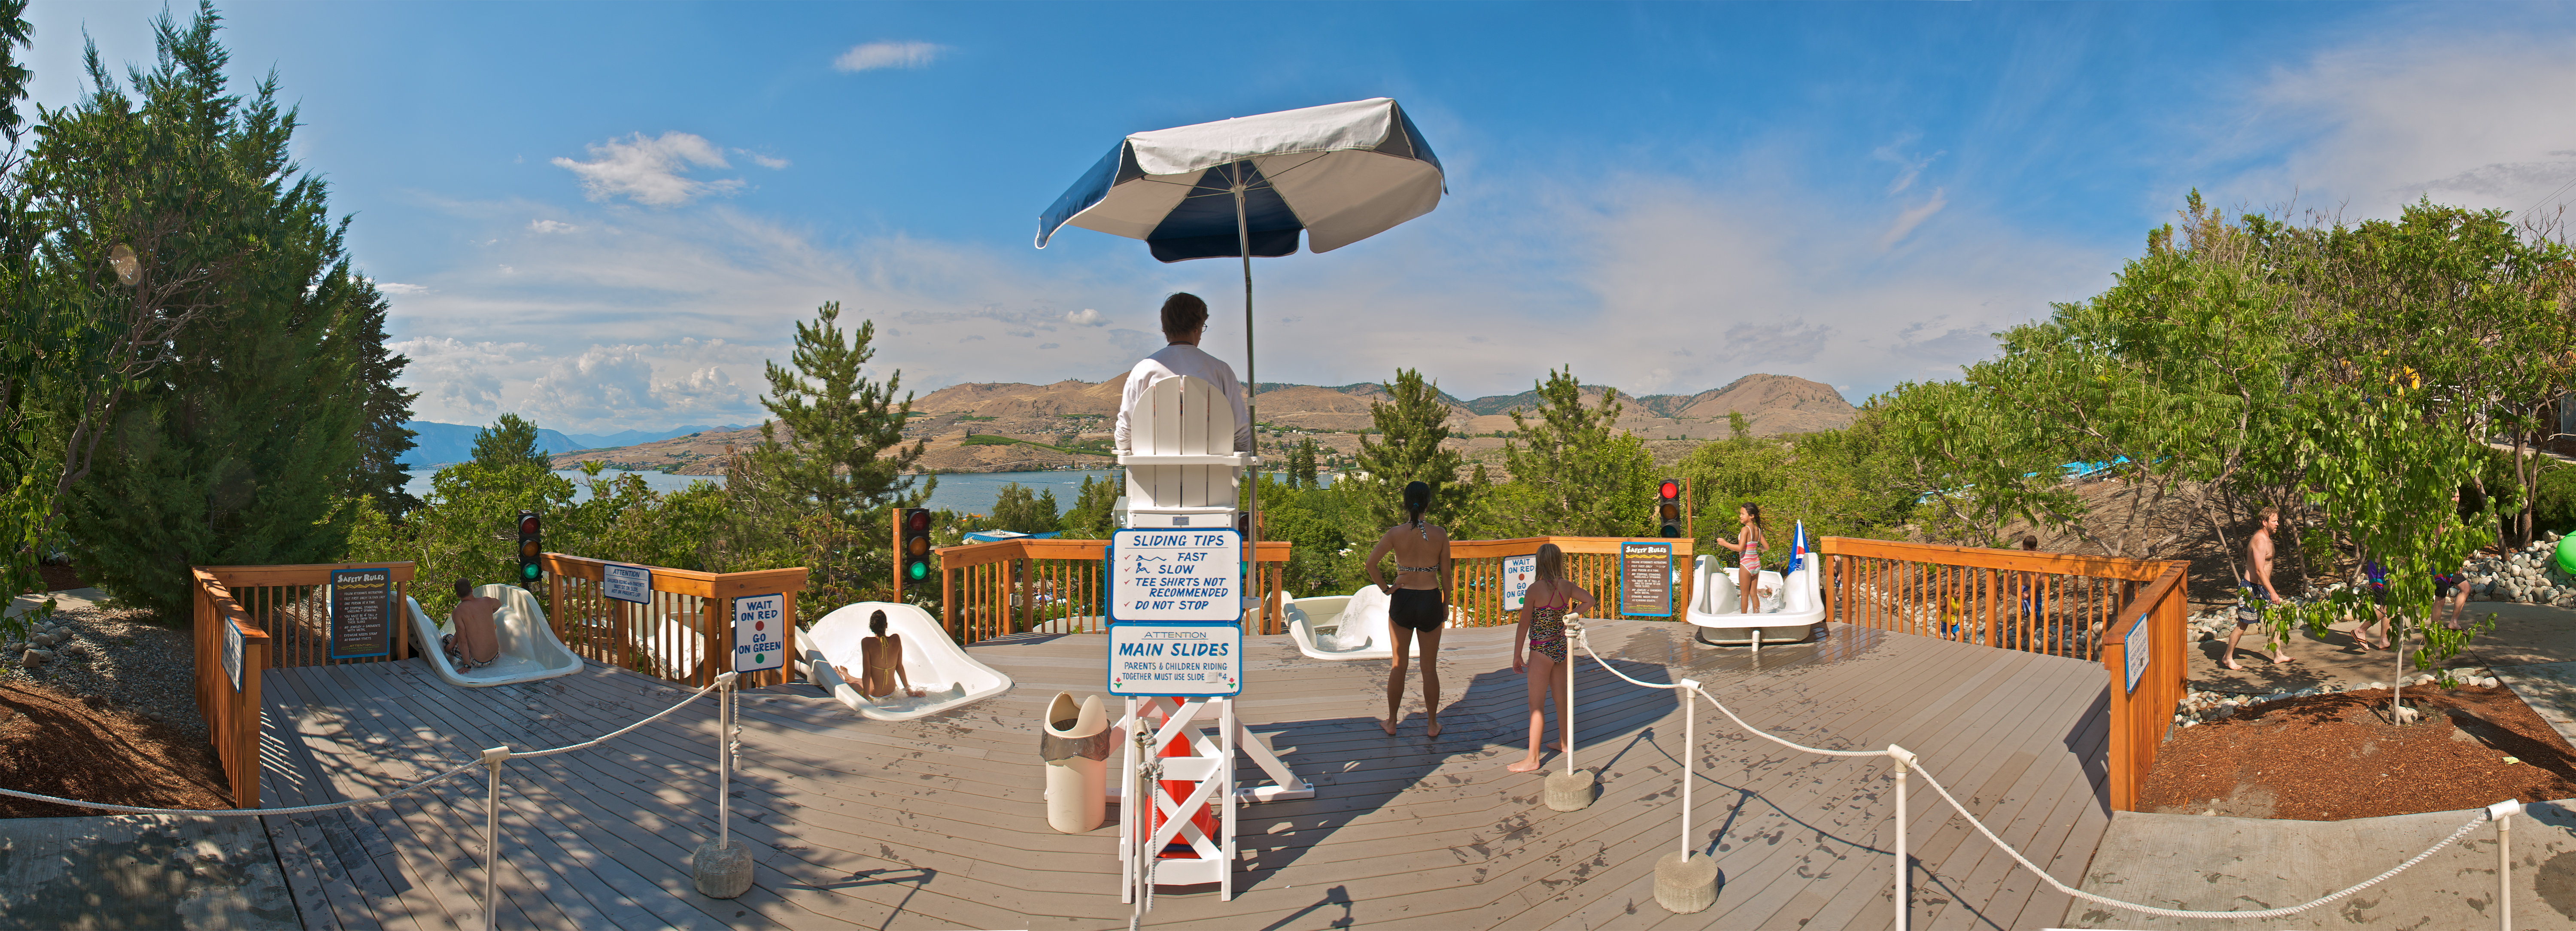 Rides & Attractions at Slidewaters, Lake Chelan